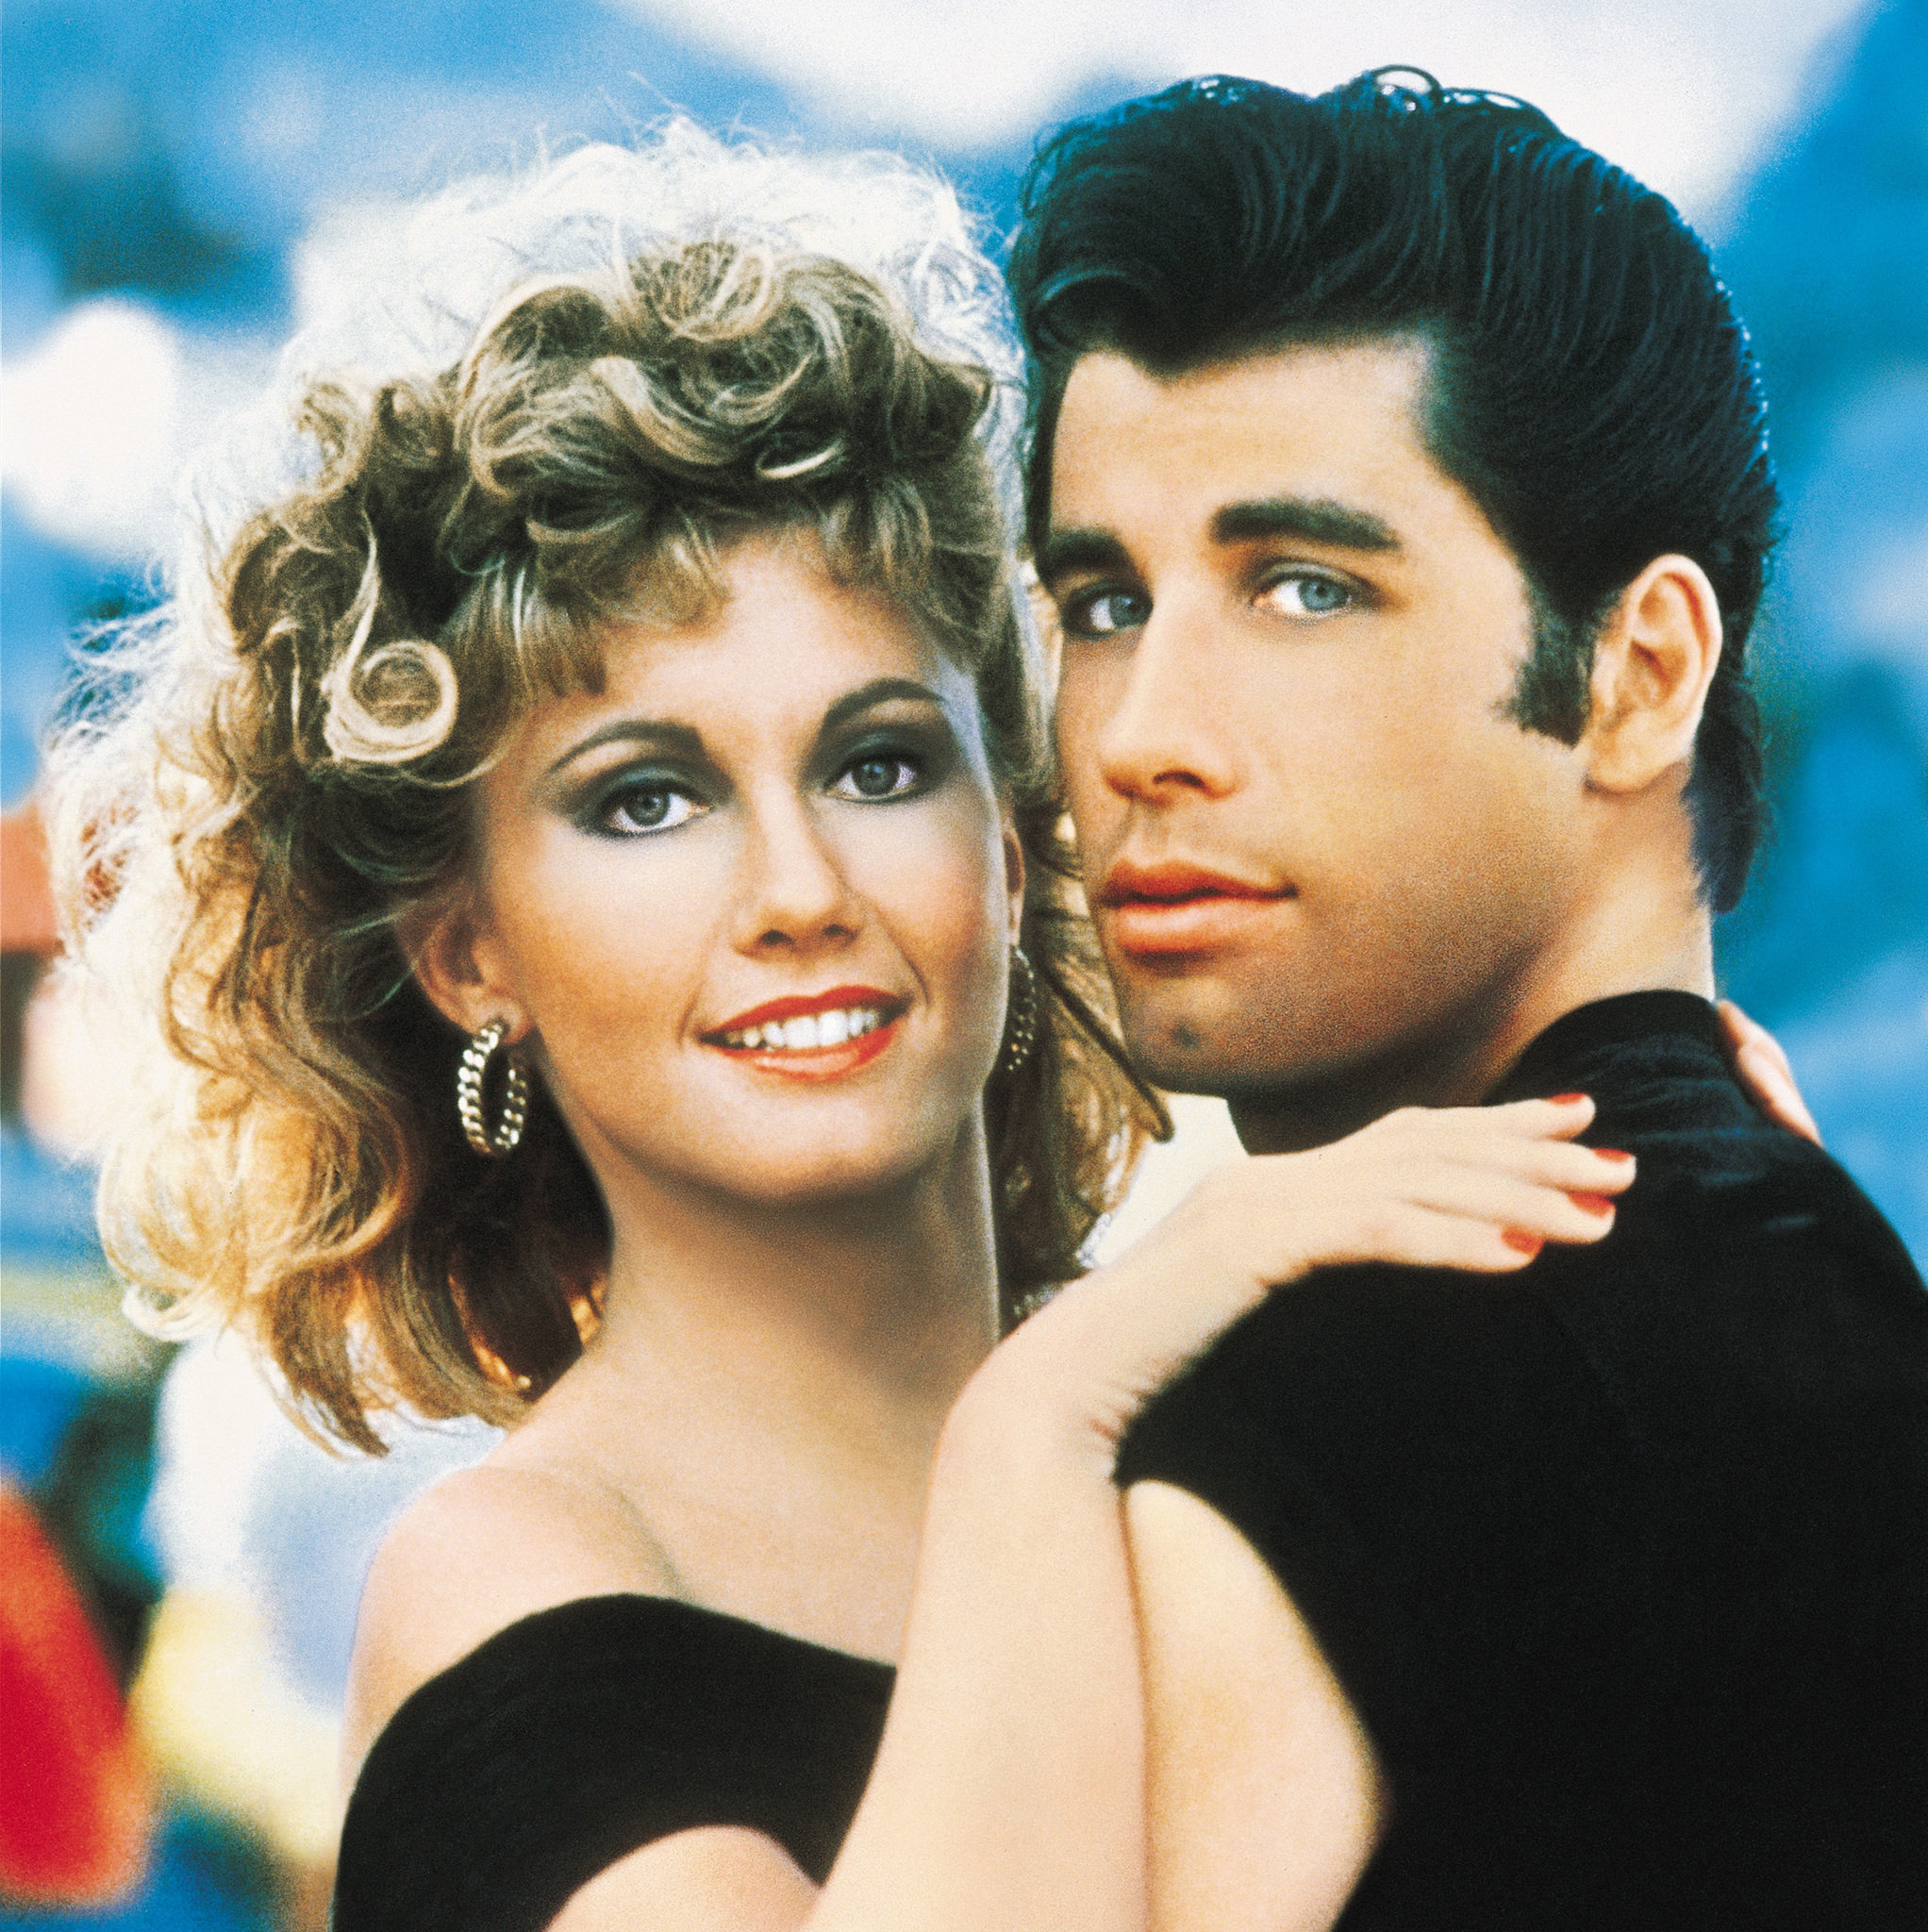 grease-film-df60c9f256ad63fc.jpg